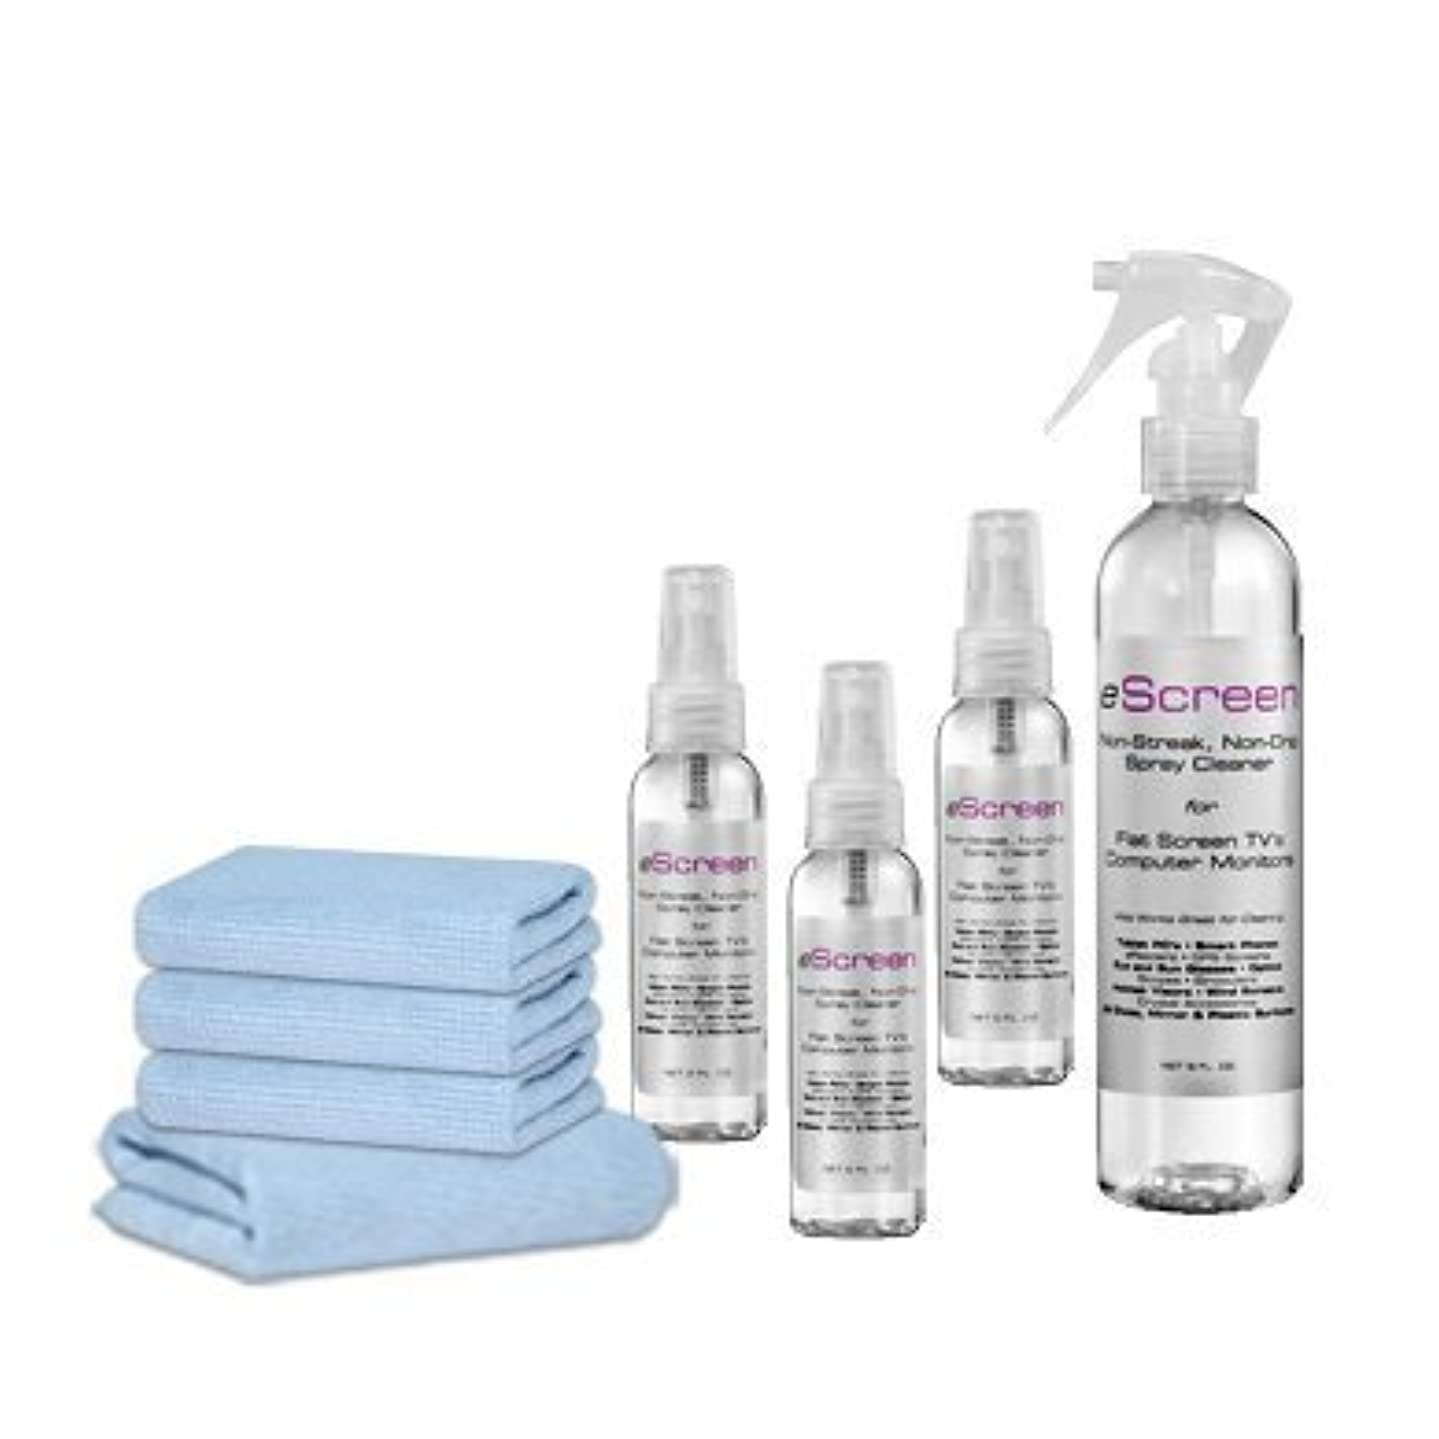 eScreen - Best Screen Cleaning Technology - Superior, Safe and Effective Screen Cleaner for All Electronics and Precious Glass Surfaces.